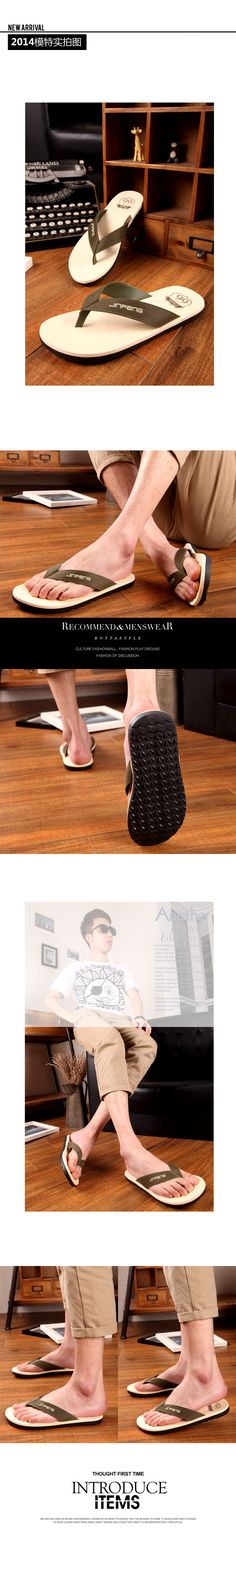 VISIT --> http://playertronics.com/products/summer-flip-flops-mens-fashion-beach-slippers-han-edition-pinches-tow-men-bigger-sizes-45-yards-46-yards-antiskid-slippers/ http://playertronics.com/products/summer-flip-flops-mens-fashion-beach-slippers-han-edition-pinches-tow-men-bigger-sizes-45-yards-46-yards-antiskid-slippers/